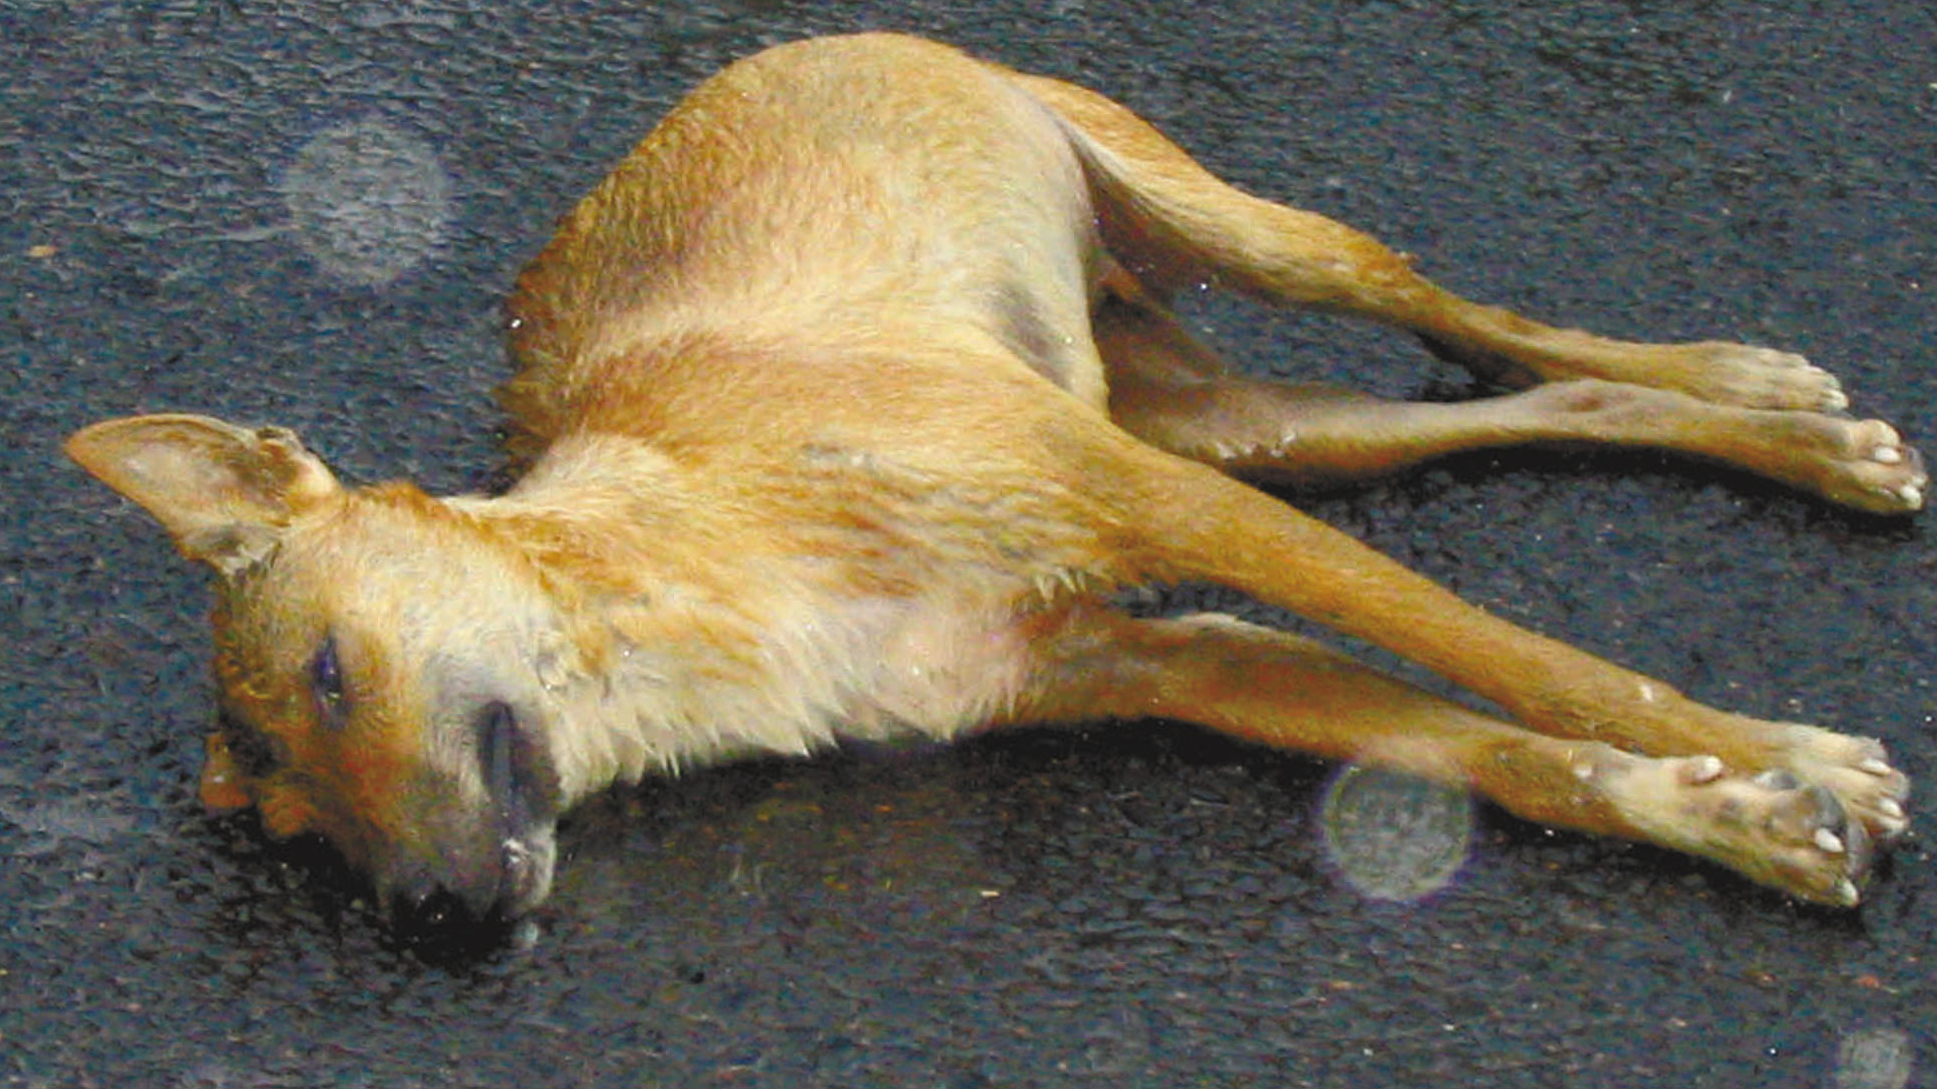 An Australian dingo (wild dog) lies dead on a rain-soaked highway in the Queensland outback in this undated handout photograph. Australia is fighting simultaneous swarms of countless locusts, rampaging attacks on sheep by wild dogs and new outbreaks of mice. The island continent's vast uncontrolled spaces make it one of the hardest hit by pests. TO ACCOMPANY FEATURE LIFE-AUSTRALIA-PESTS FOR EDITORIAL USE ONLY REUTERS/Handout/AgForce Queensland